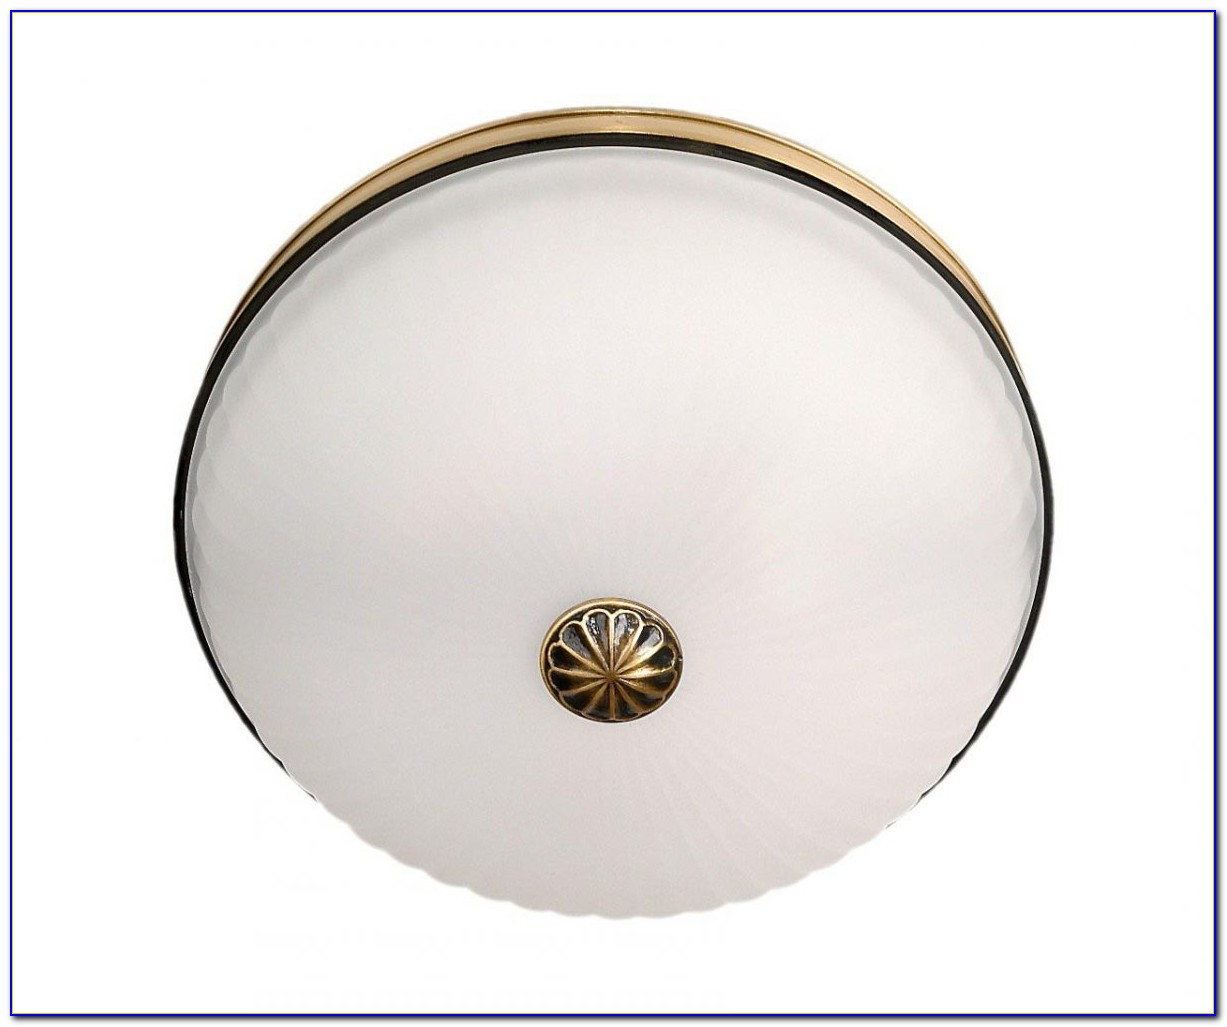 Decorative Ceiling Plate For Light Fixture